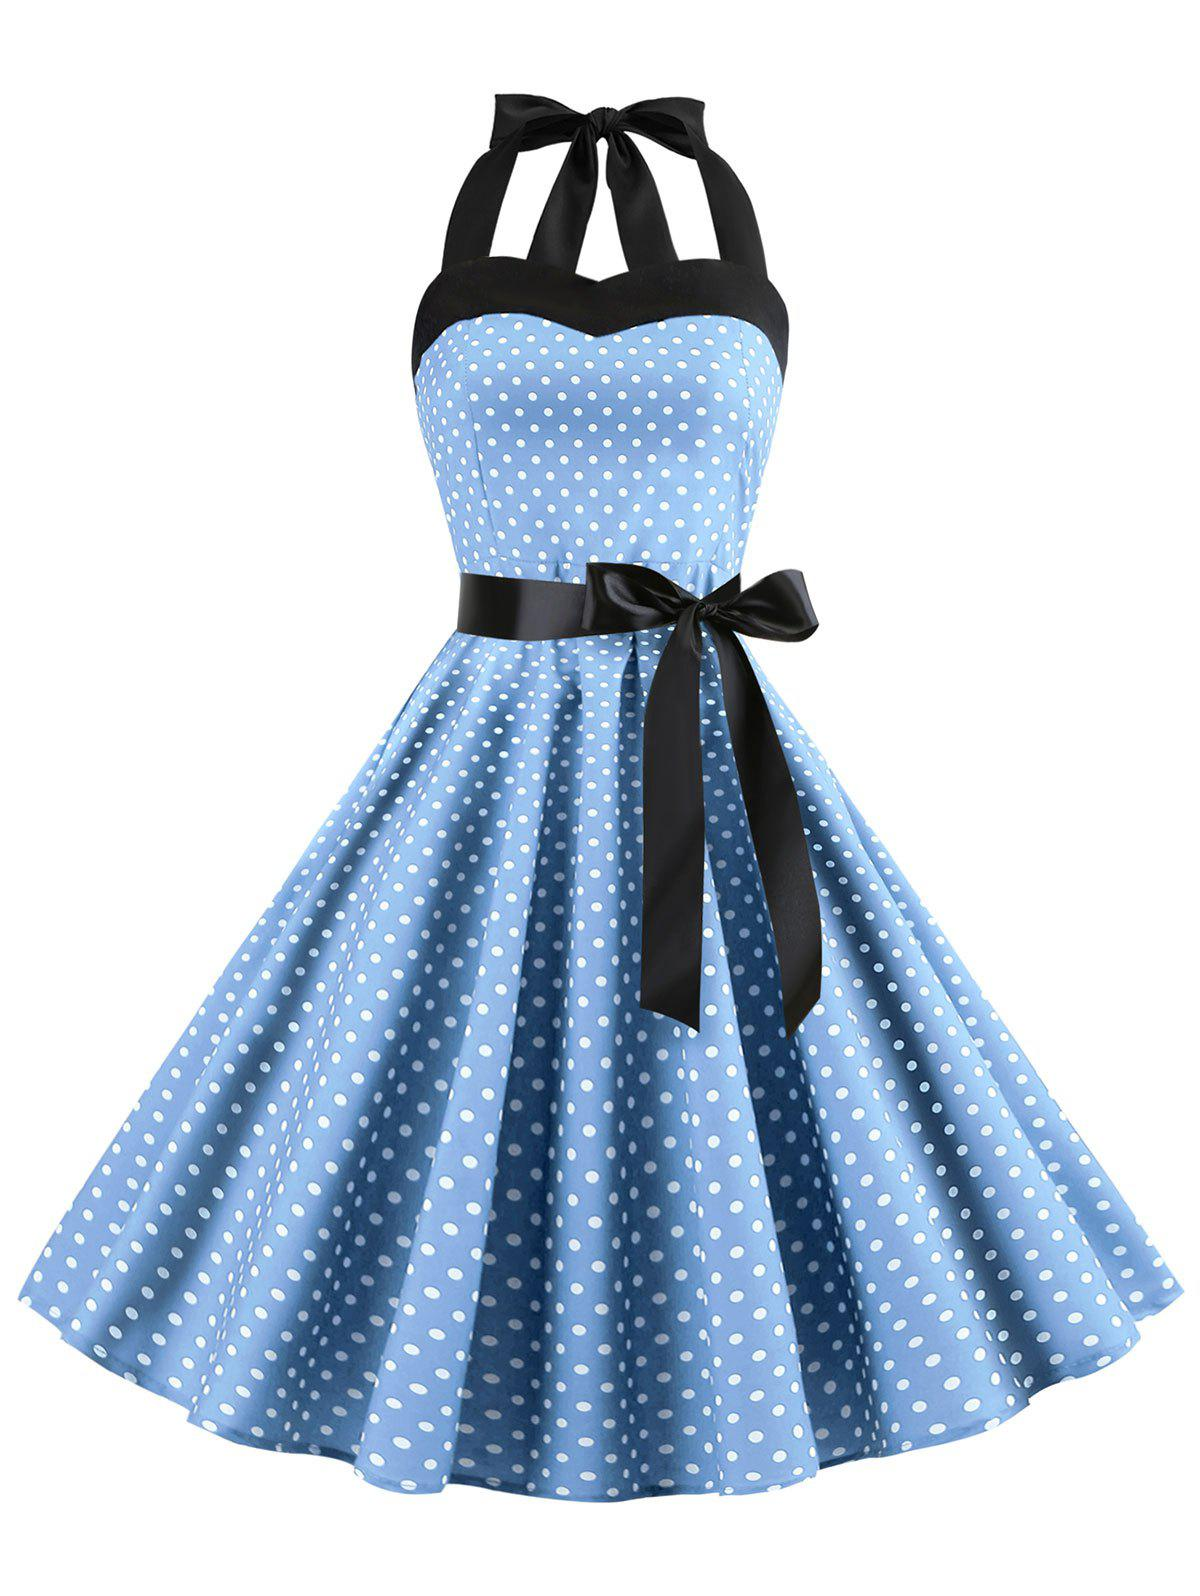 Fashion Lace-up Polka Dot Halter Vintage Dress